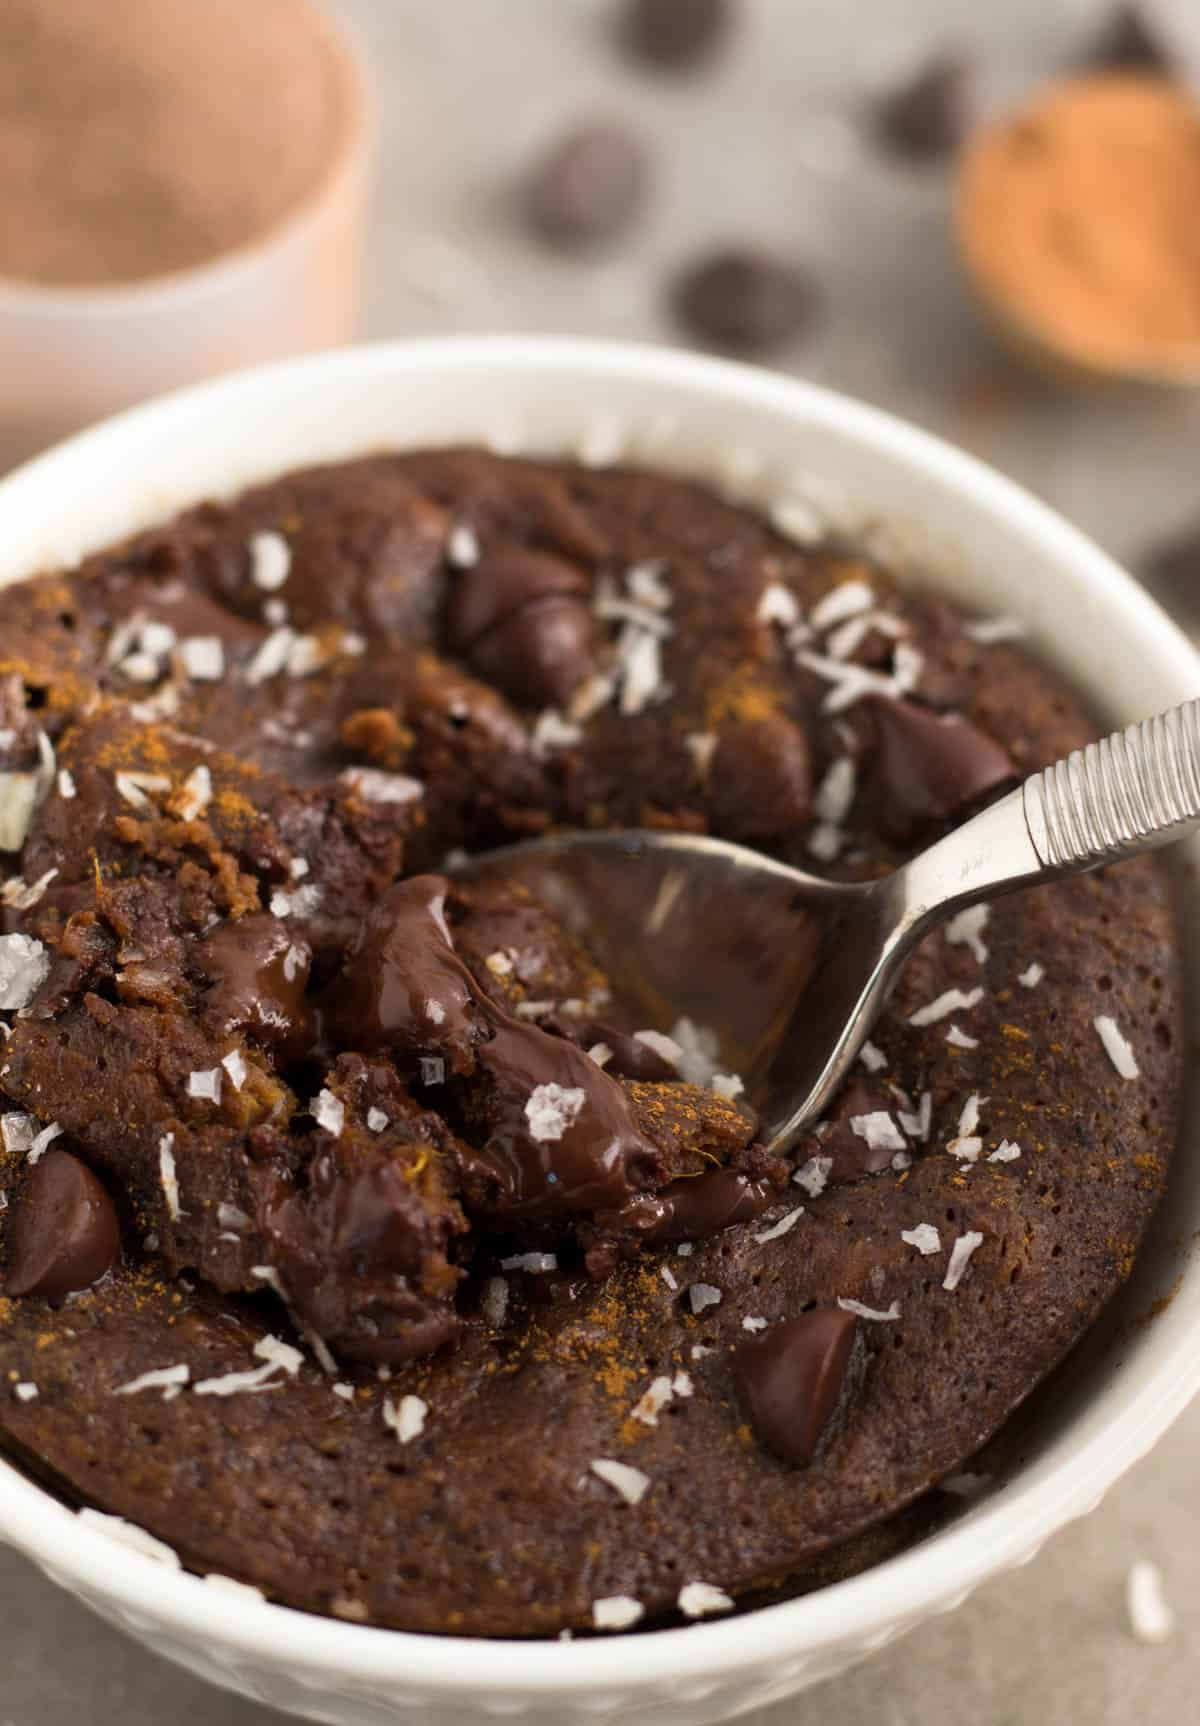 Spoon taking out a scoop of a healthy chocolate protein mug cake with melted chocolate chips.